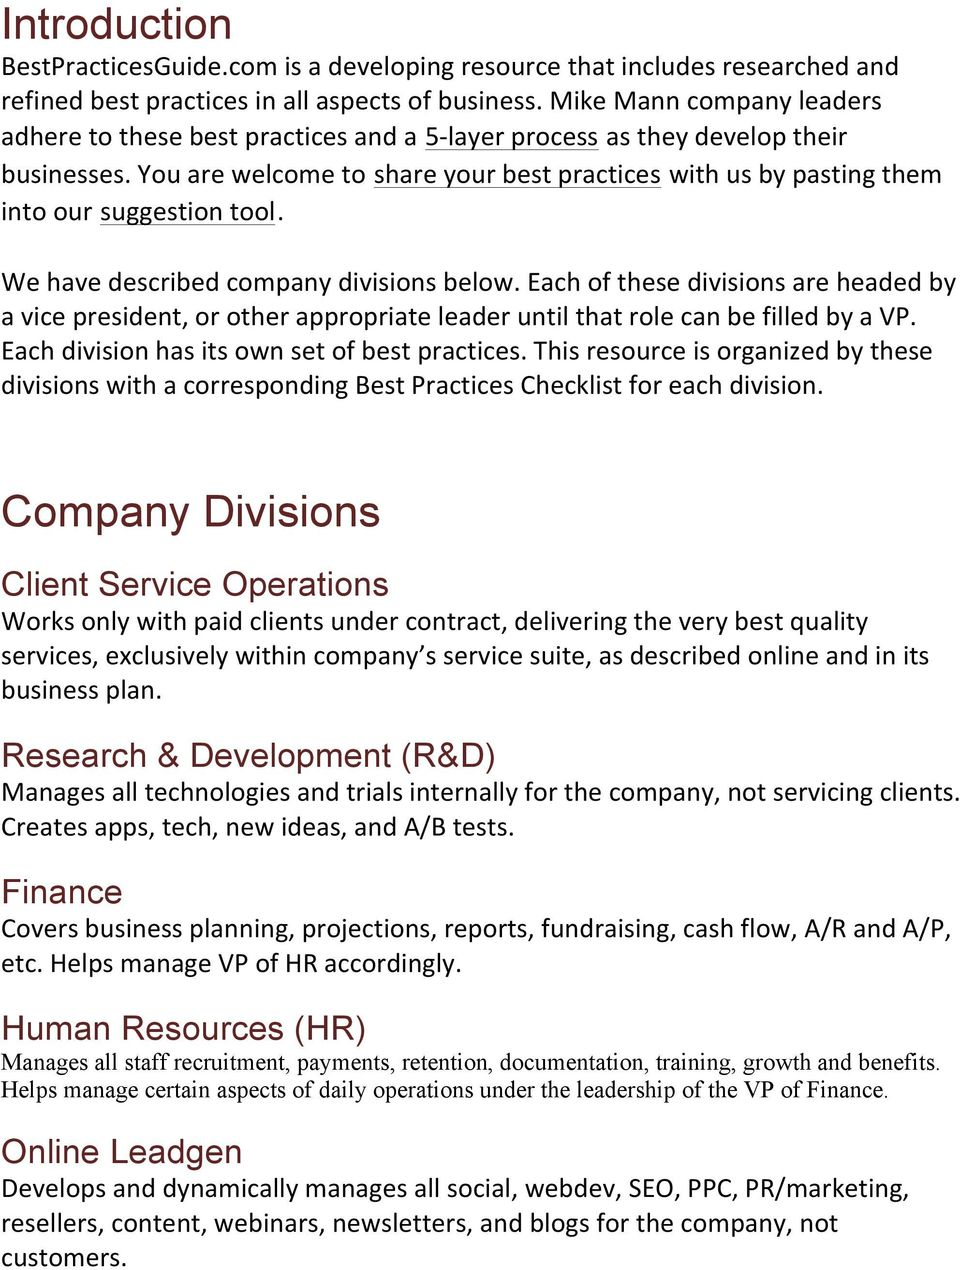 You are welcome to share your best practices with us by pasting them into our suggestion tool. We have described company divisions below.